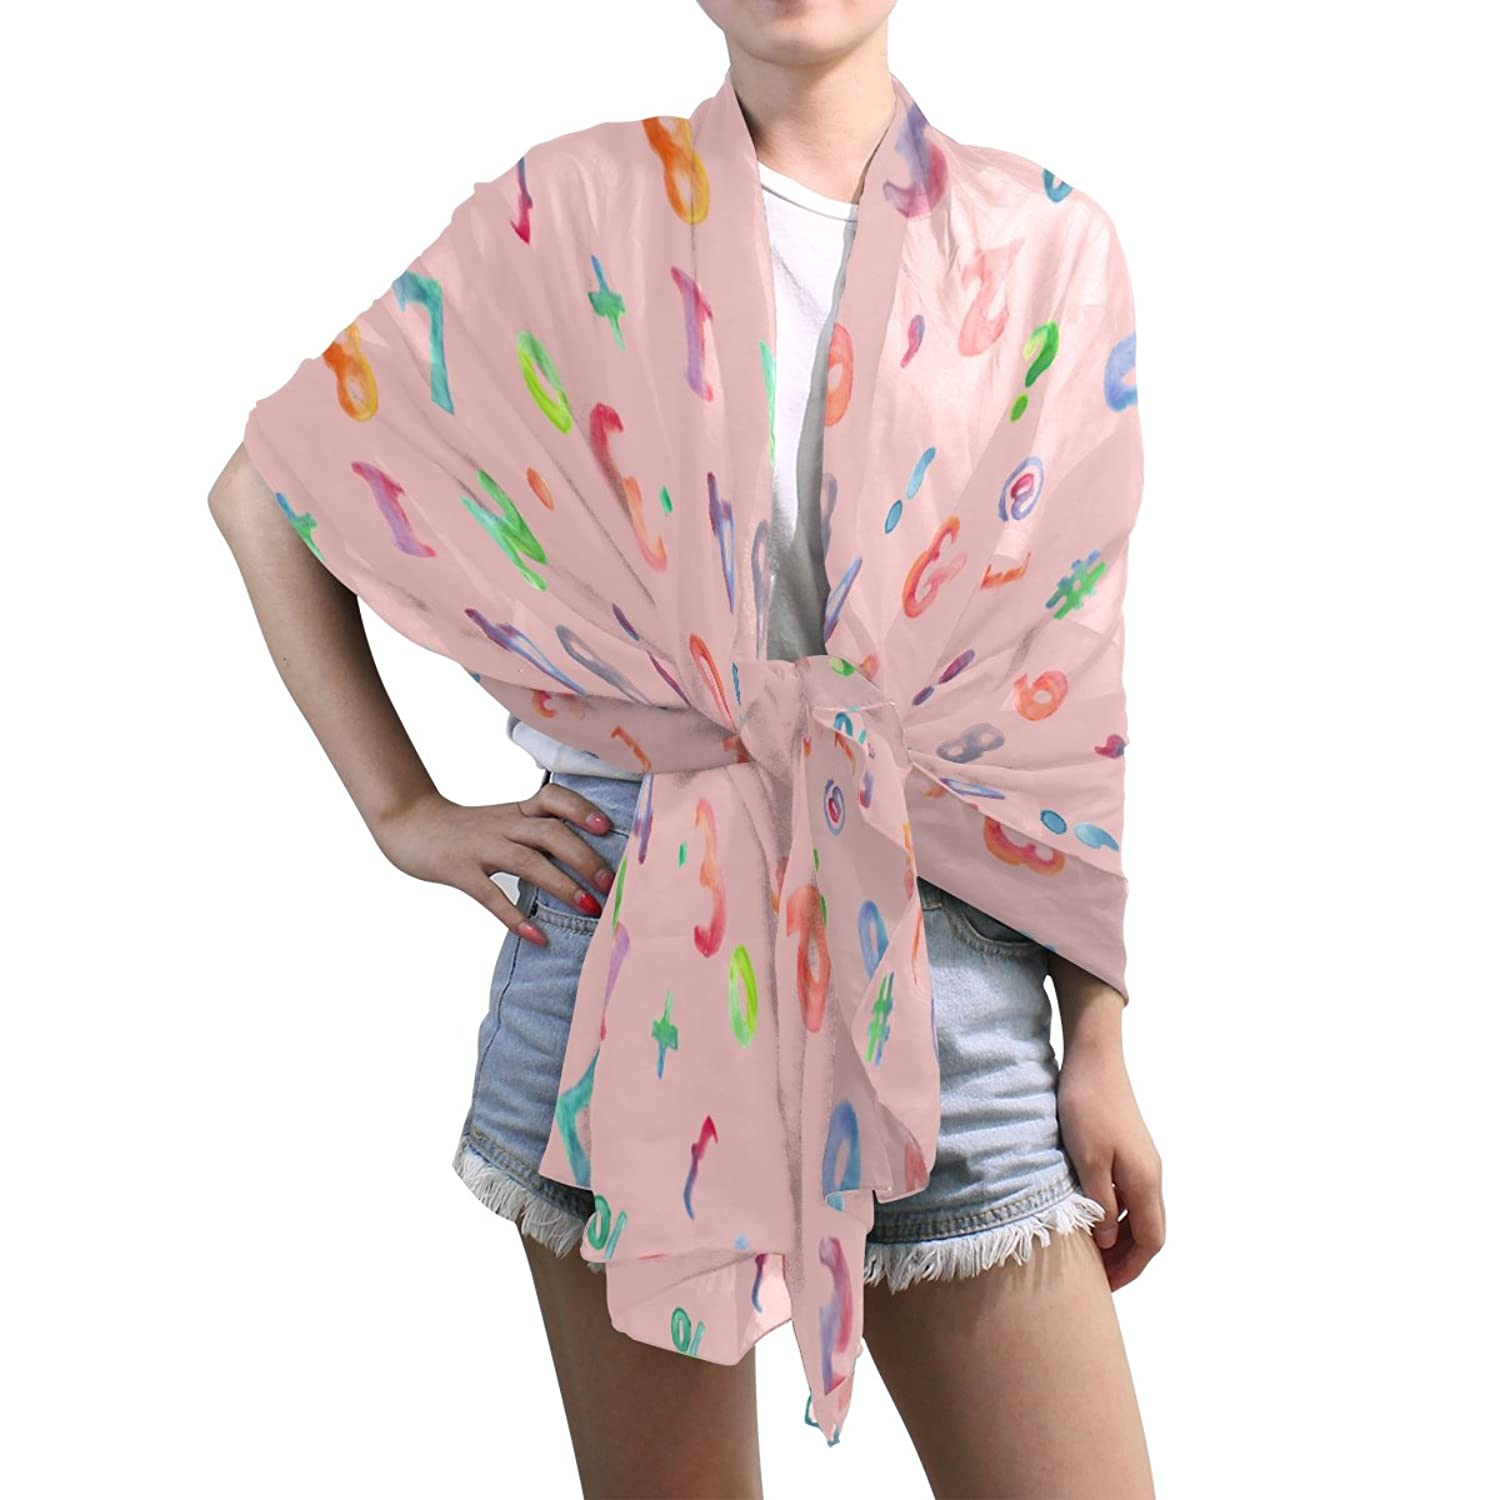 Shawl Wrap Sheer Scarves,Letter,Oblong Chiffon Scarf